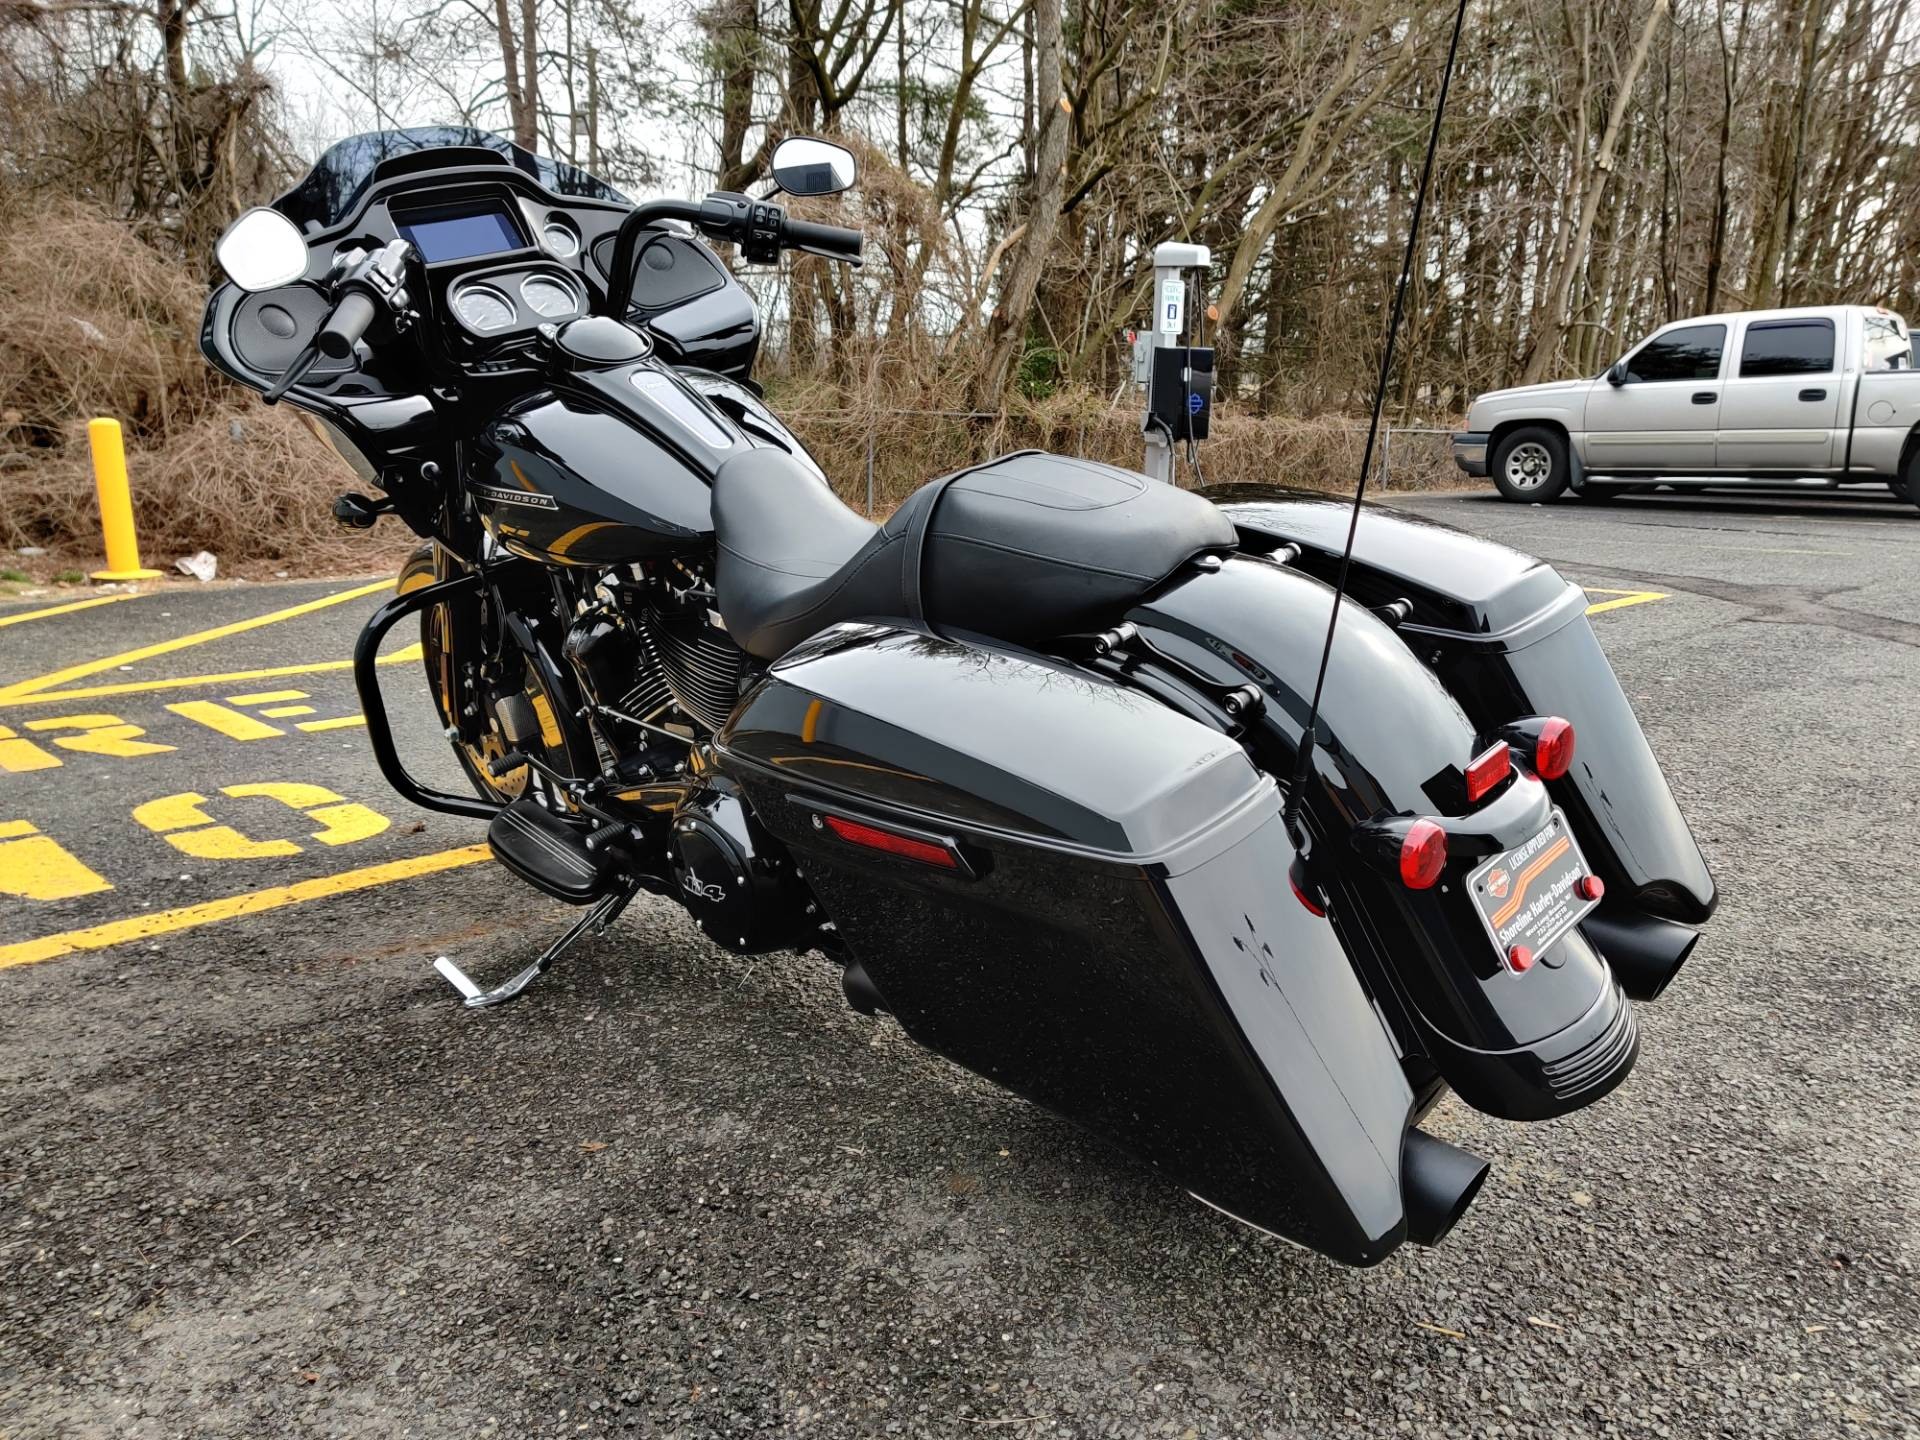 2019 Harley-Davidson Road Glide in West Long Branch, New Jersey - Photo 6